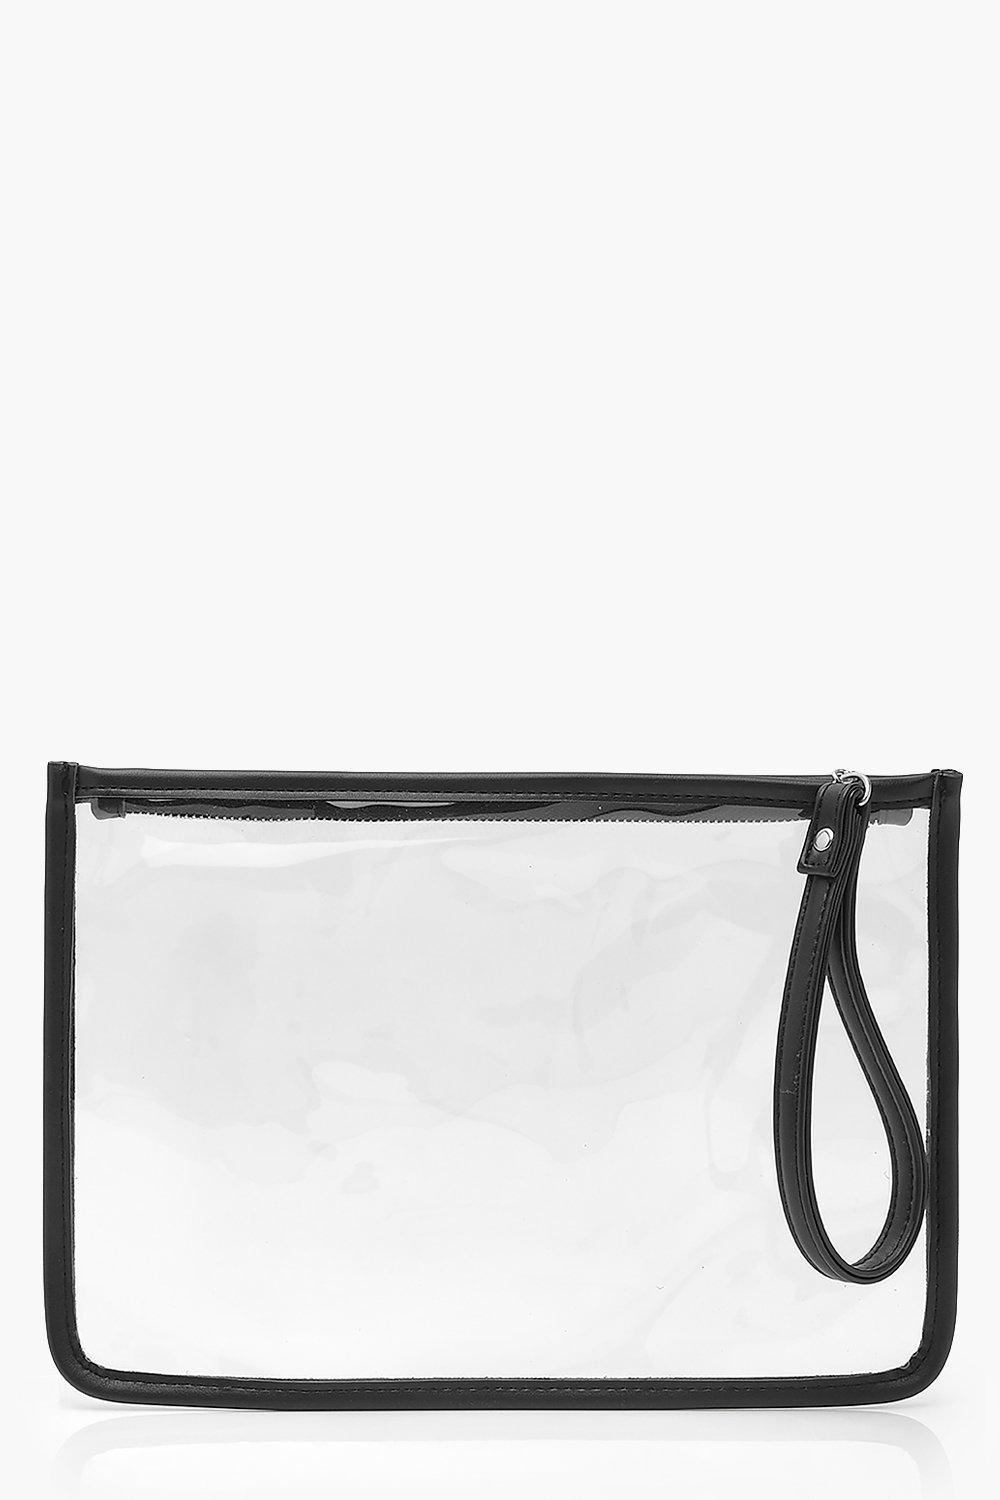 boohoo Womens Pu Clear Zip Top Travel Pouch With Handle - Black - One Size, Black